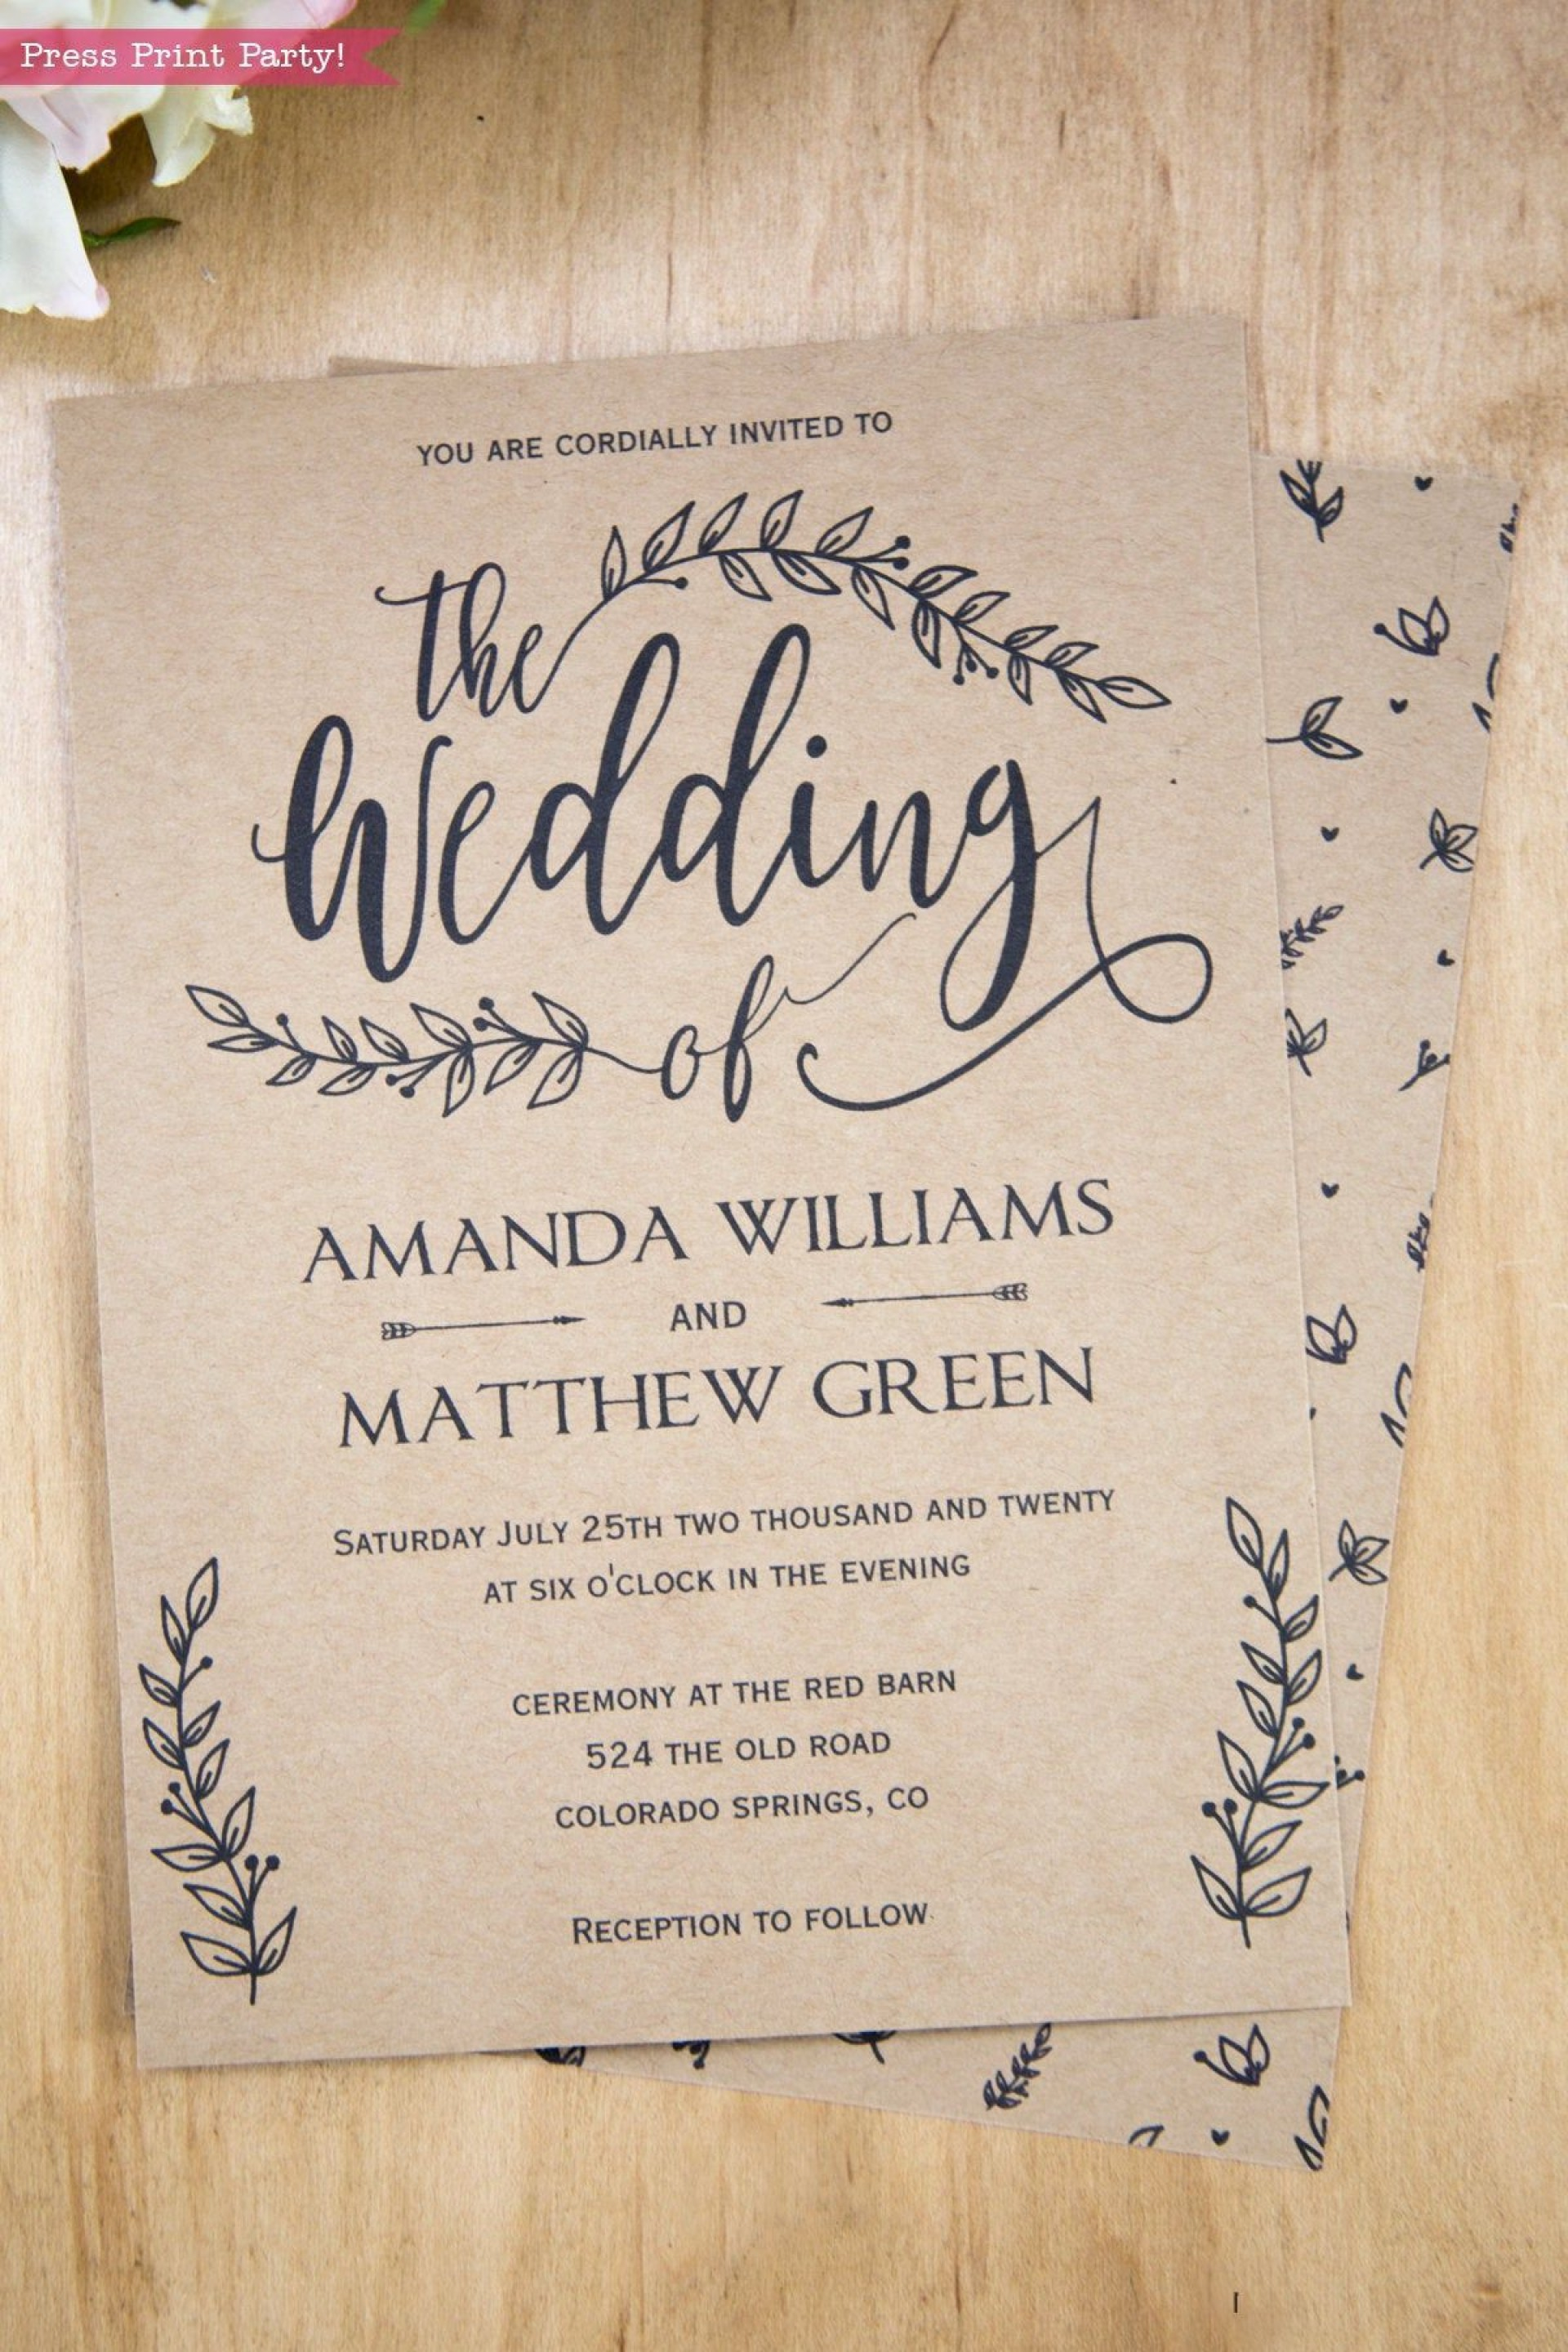 002 Wonderful Rustic Wedding Invitation Template High Def  Templates Free For Word Maker Photoshop1920